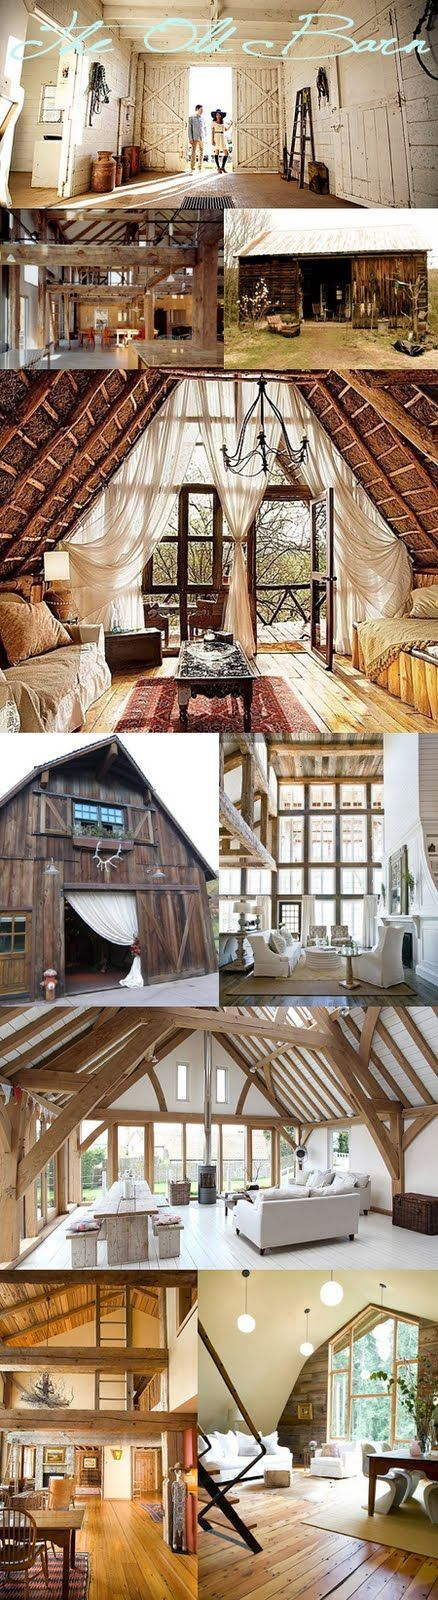 Old Barn Converted Into A Home Pictures Photos And